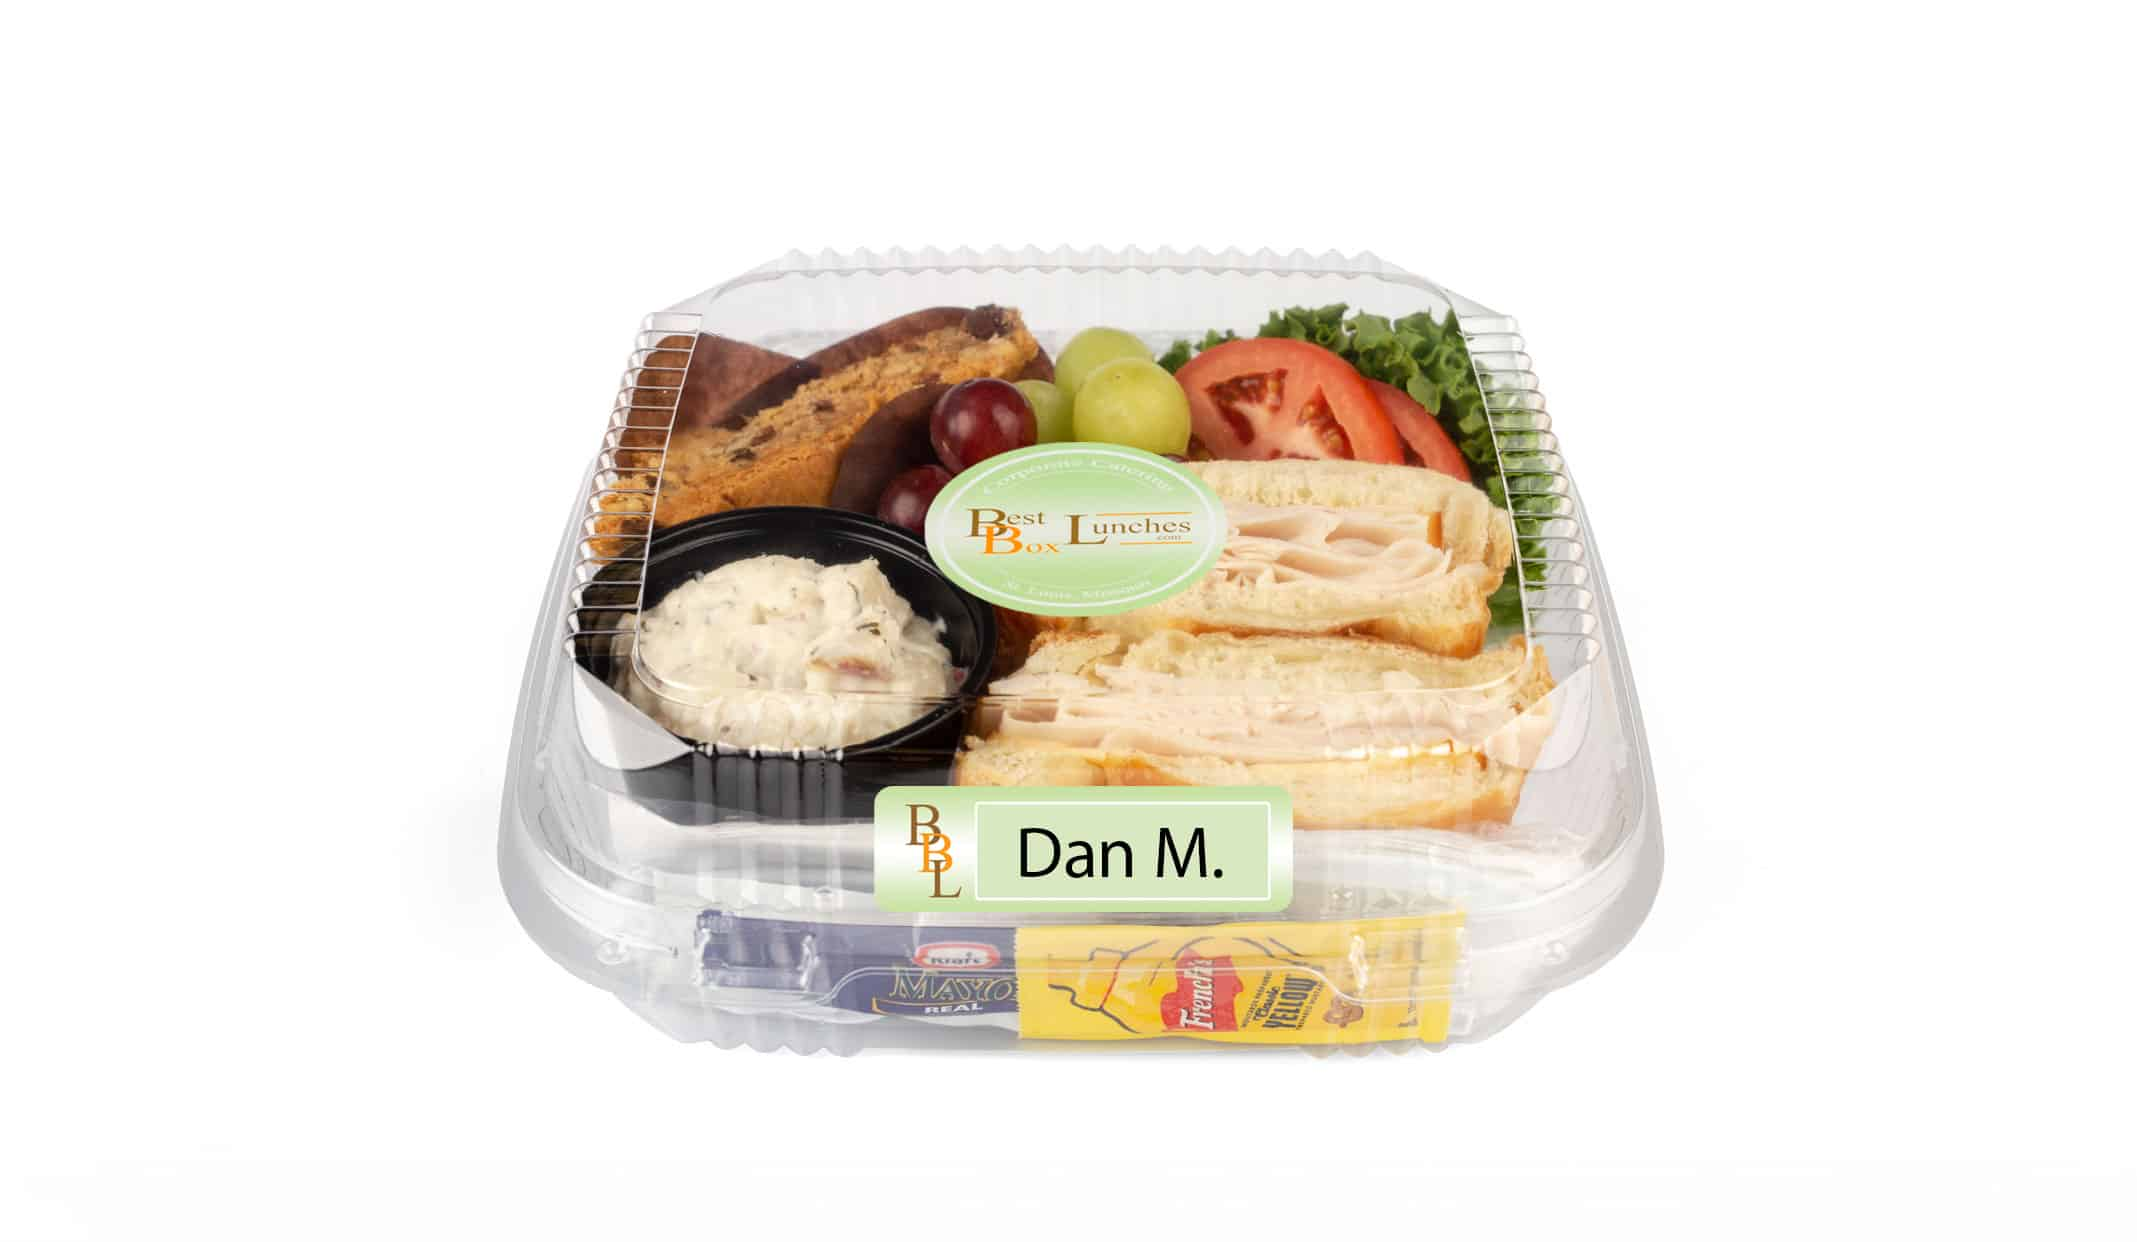 Personal Box Lunches labeled by name